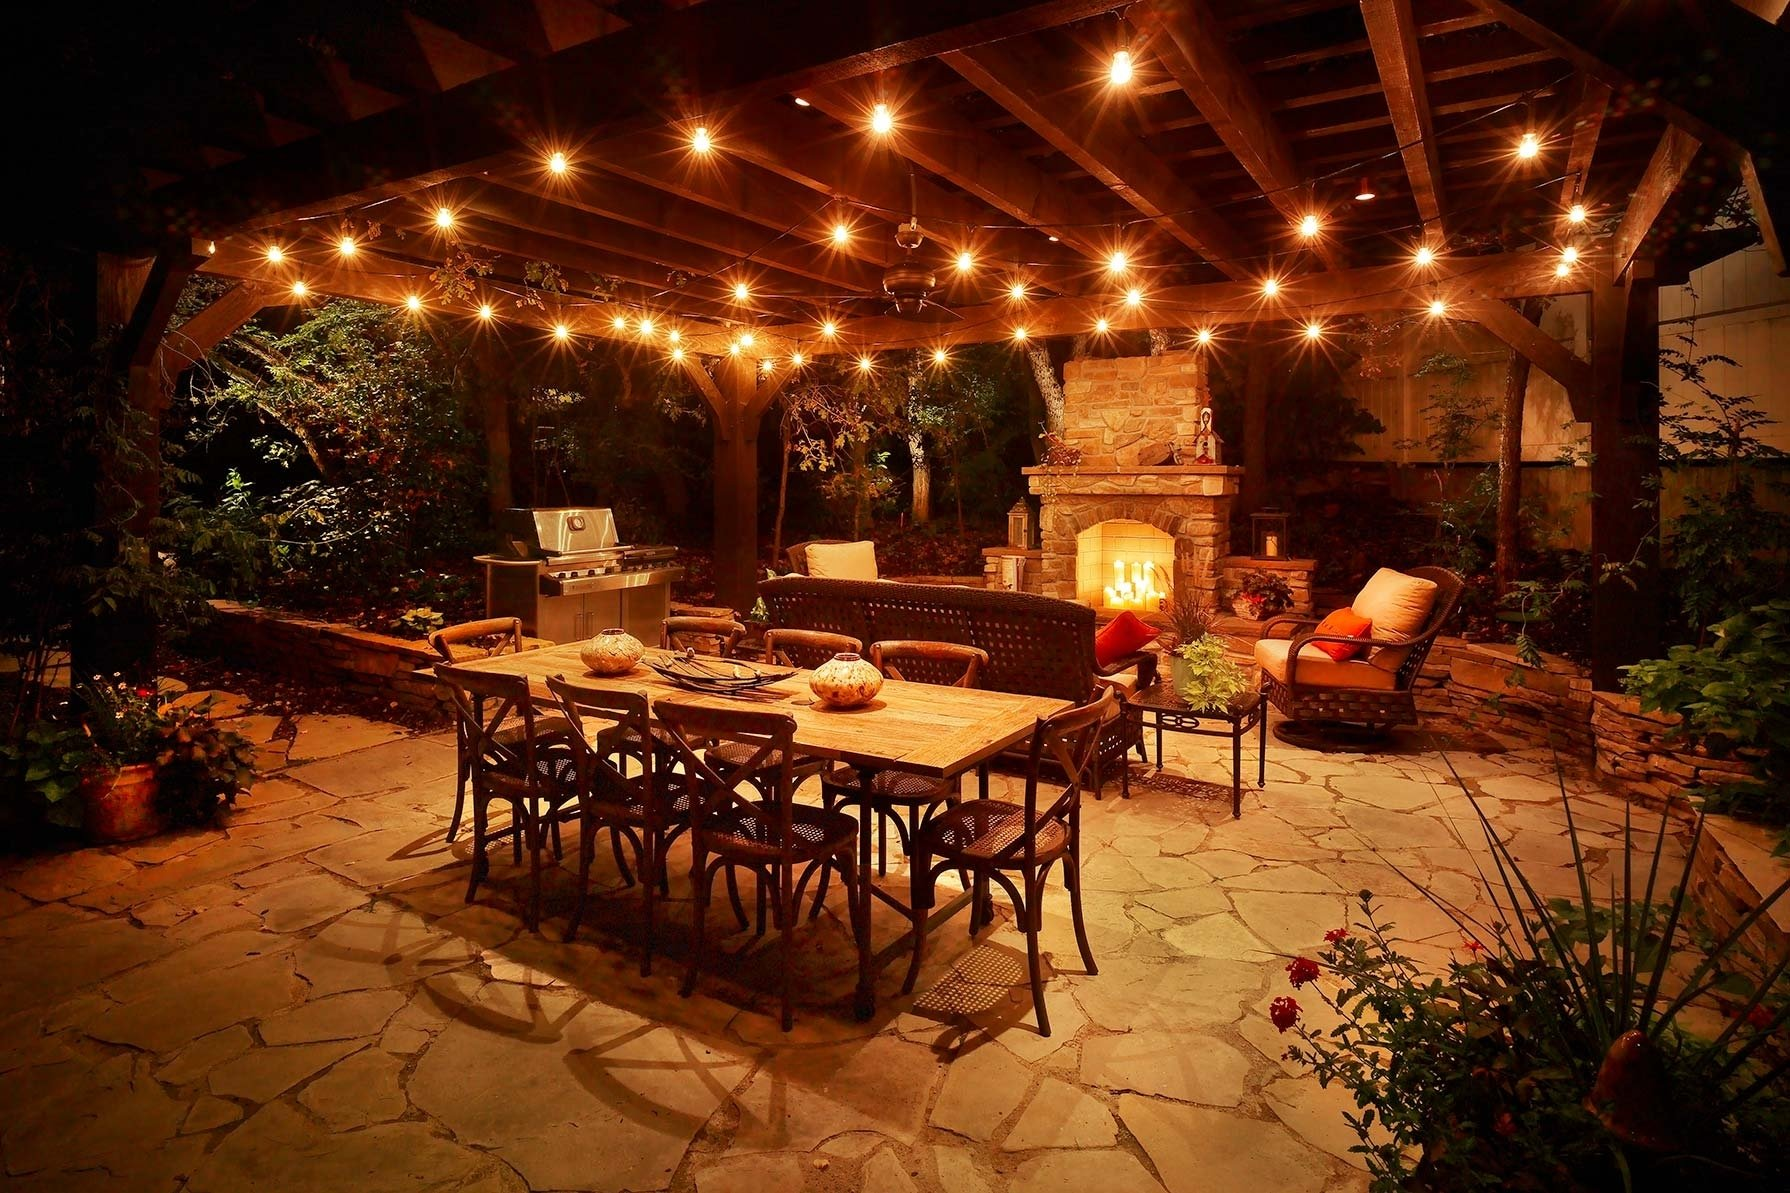 10 Amazing Outdoor Lighting Ideas For Patios covered patio lighting ideas backyard patio lighting ideas covered 2020